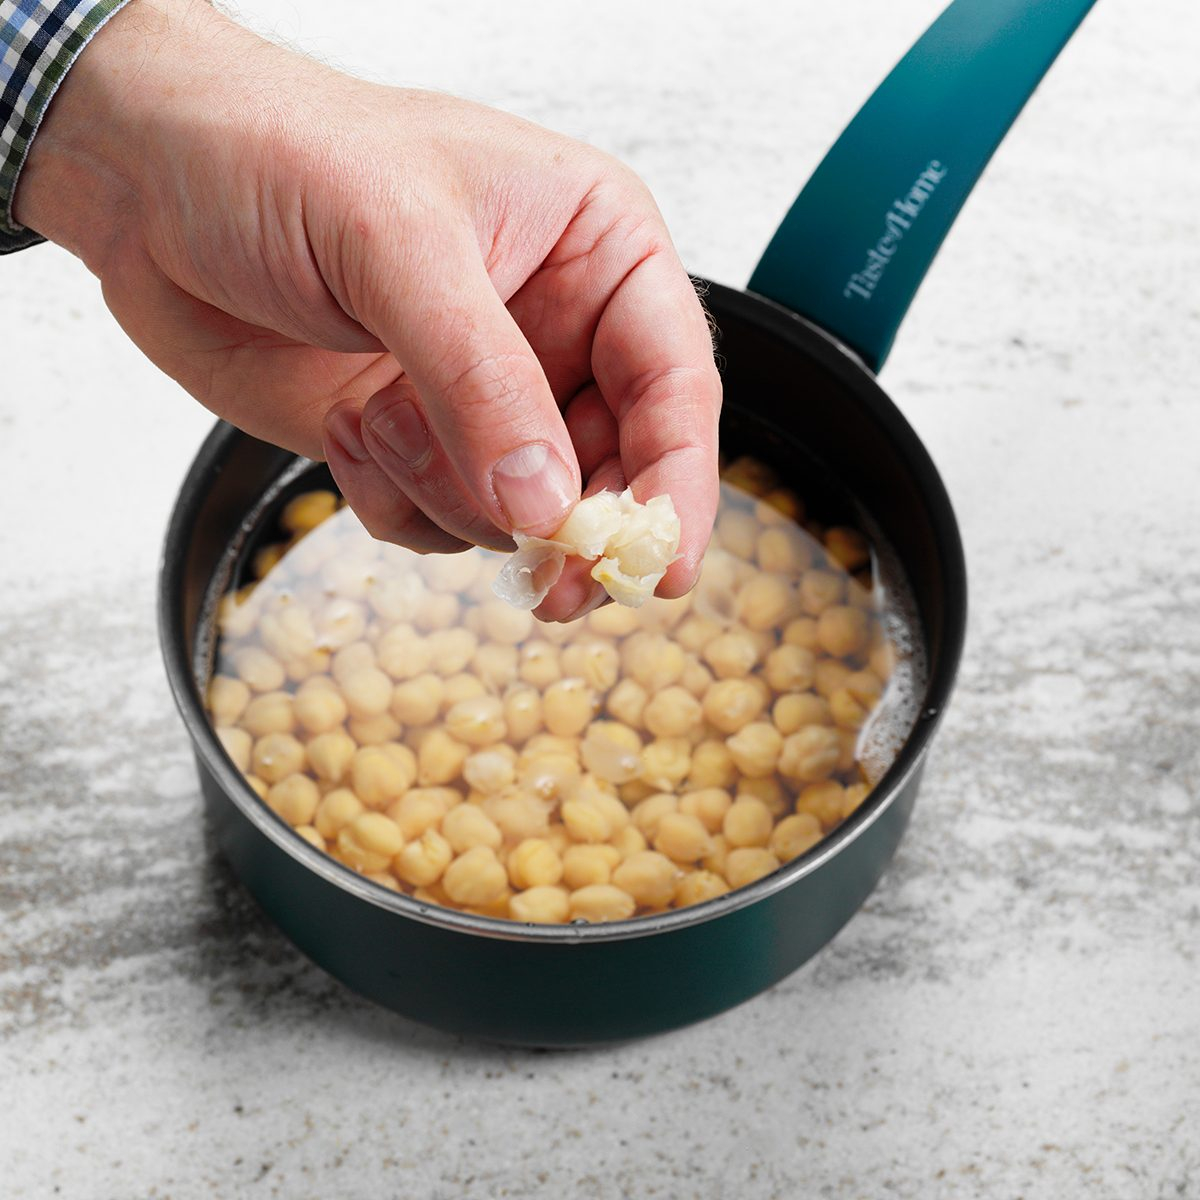 A person removing the skins from a pot of chickpeas in order to make homemade hummus.